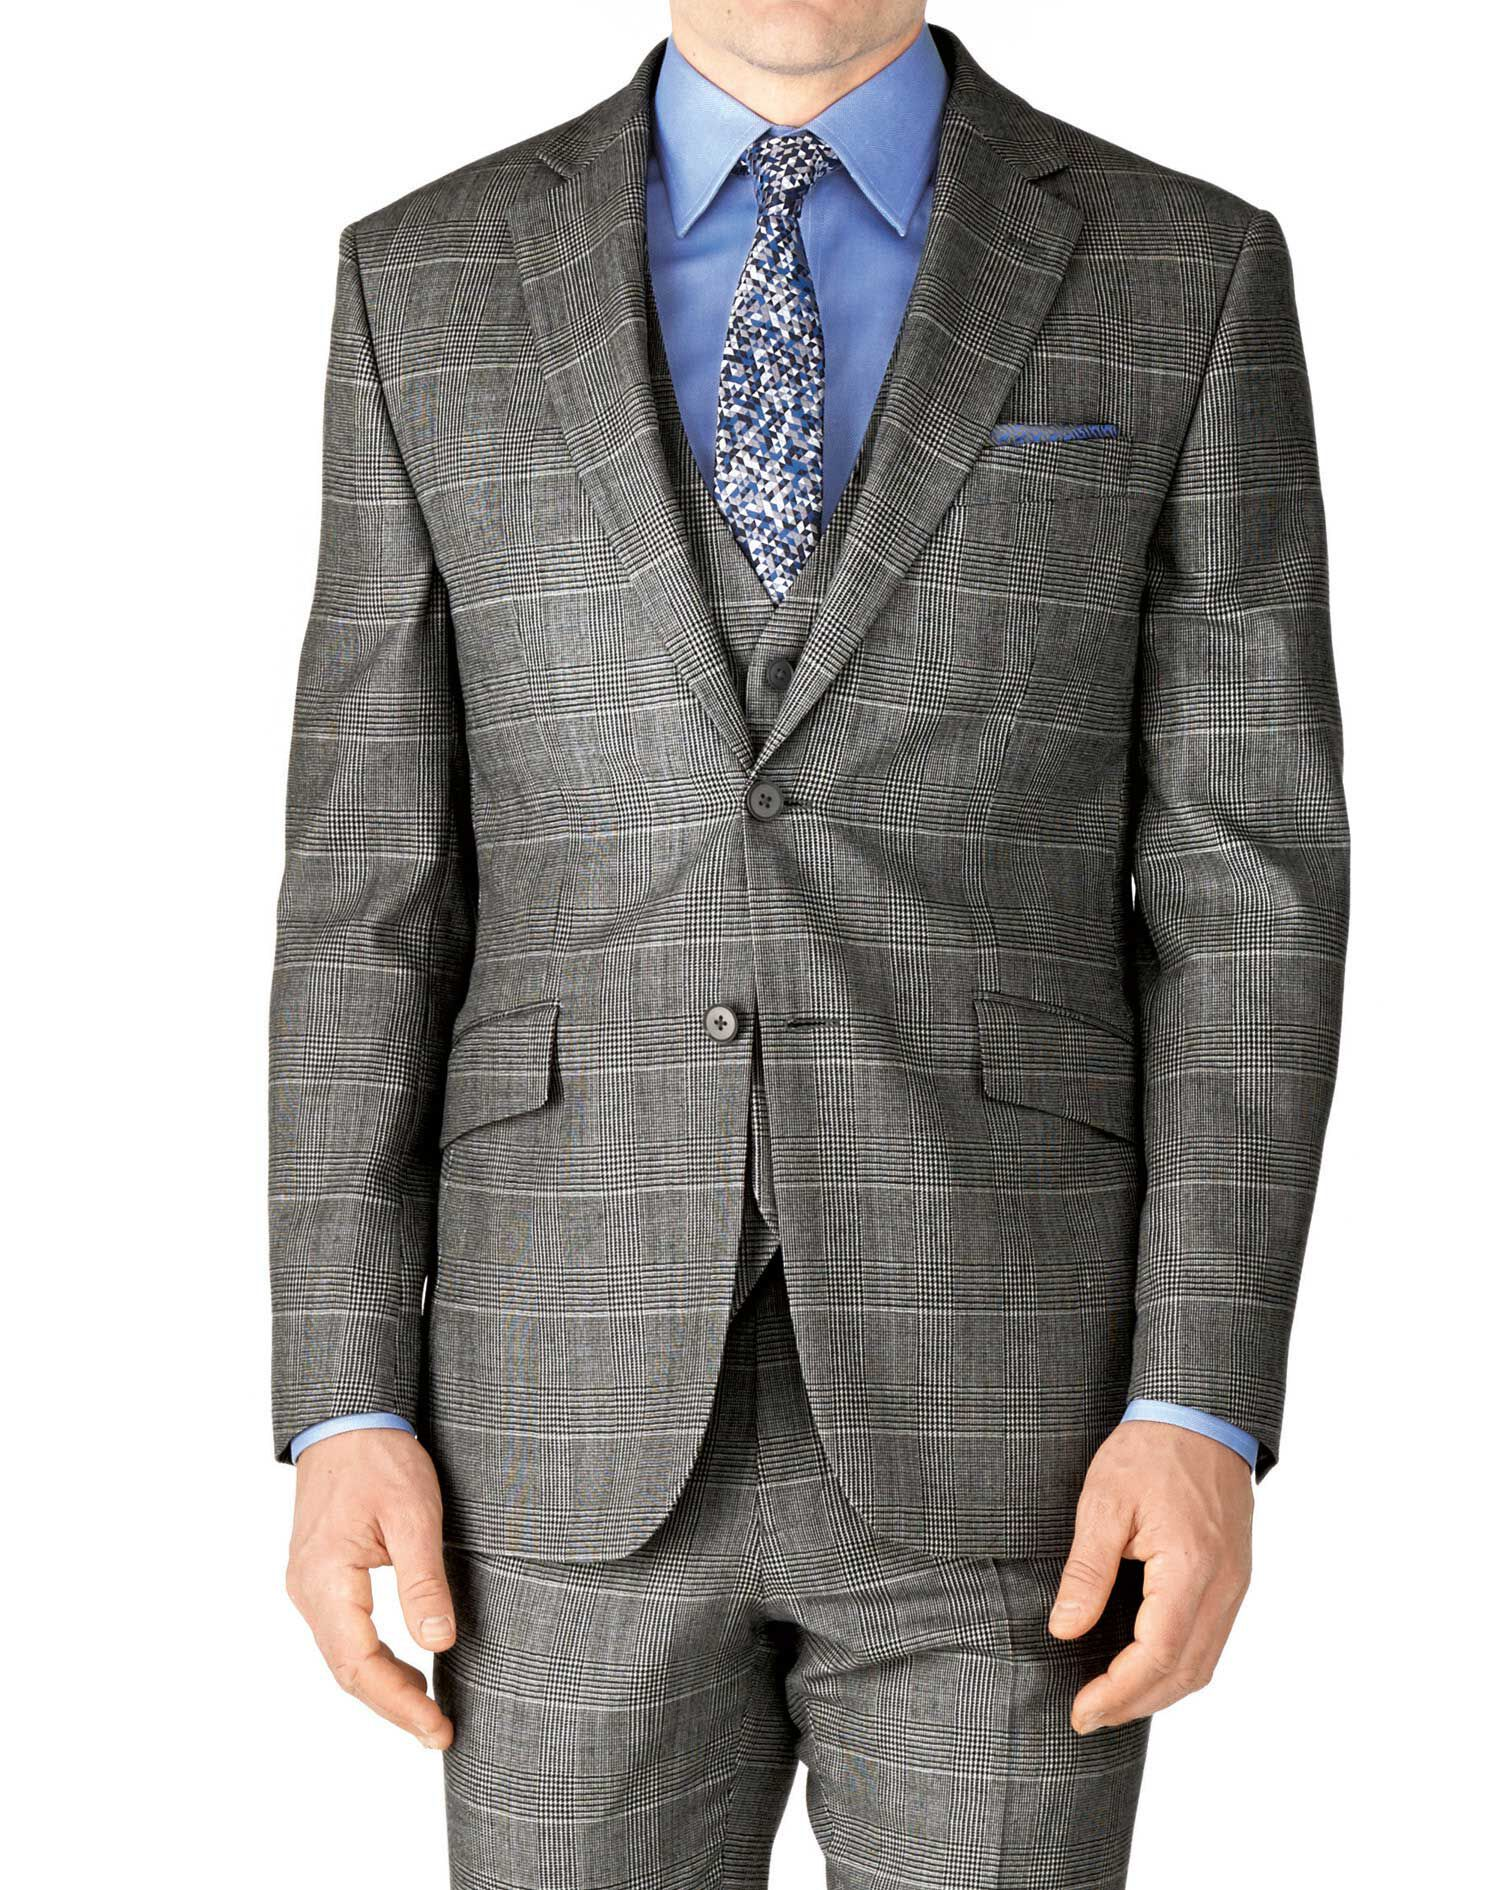 Grey Check Classic Fit Twill Business Suit Wool Jacket Size 38 Long by Charles Tyrwhitt